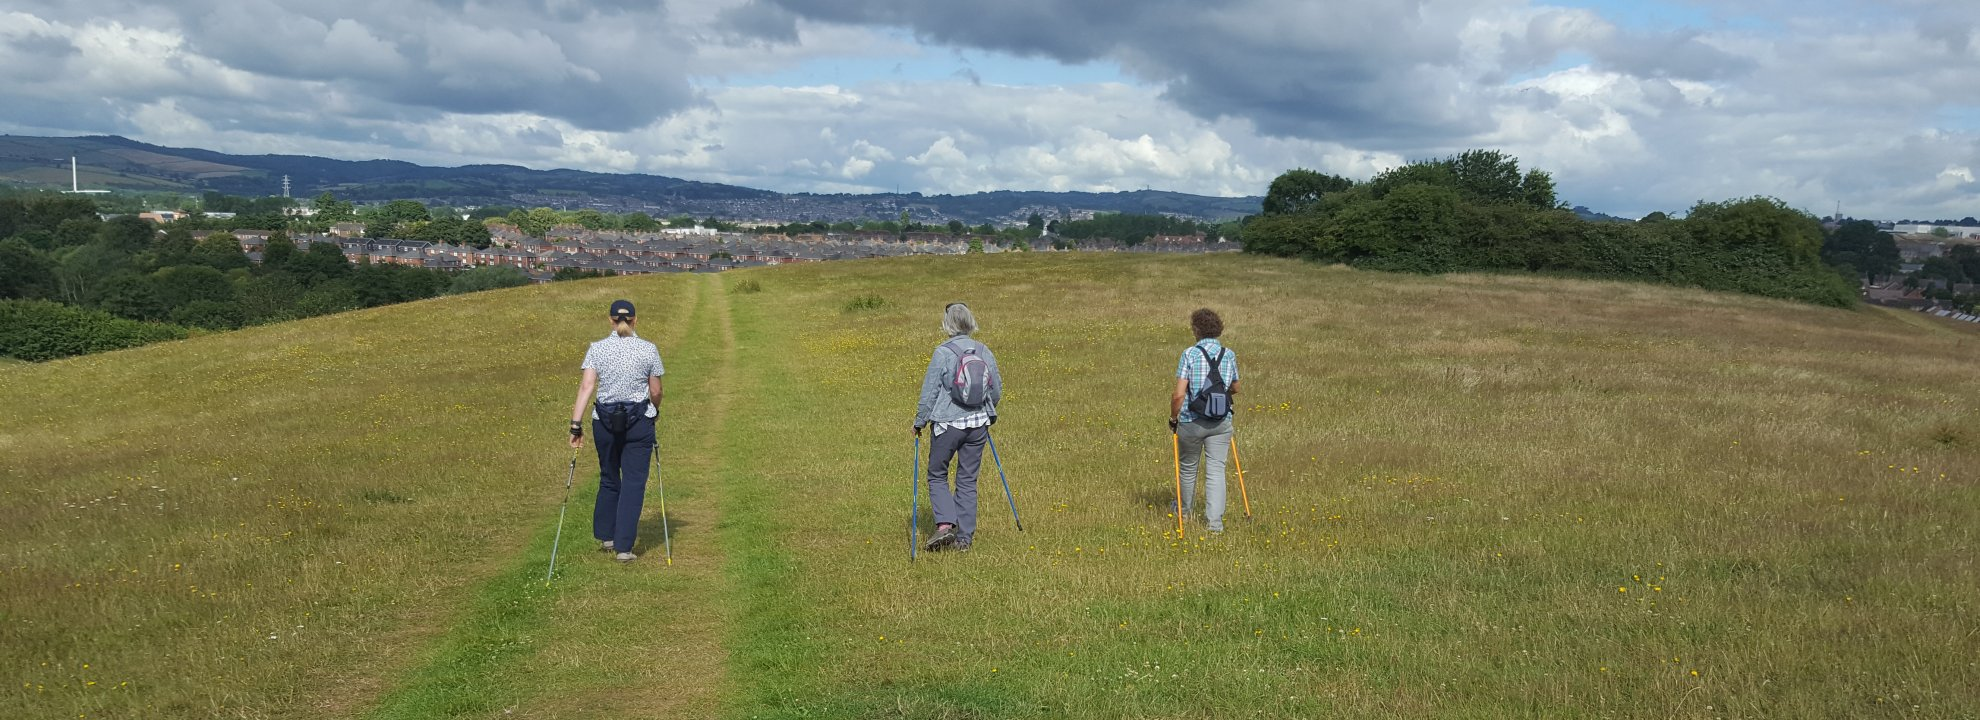 Nordic Walk - Ripple (Medium Pace) - Ludwell Valley Park, Exeter Banner